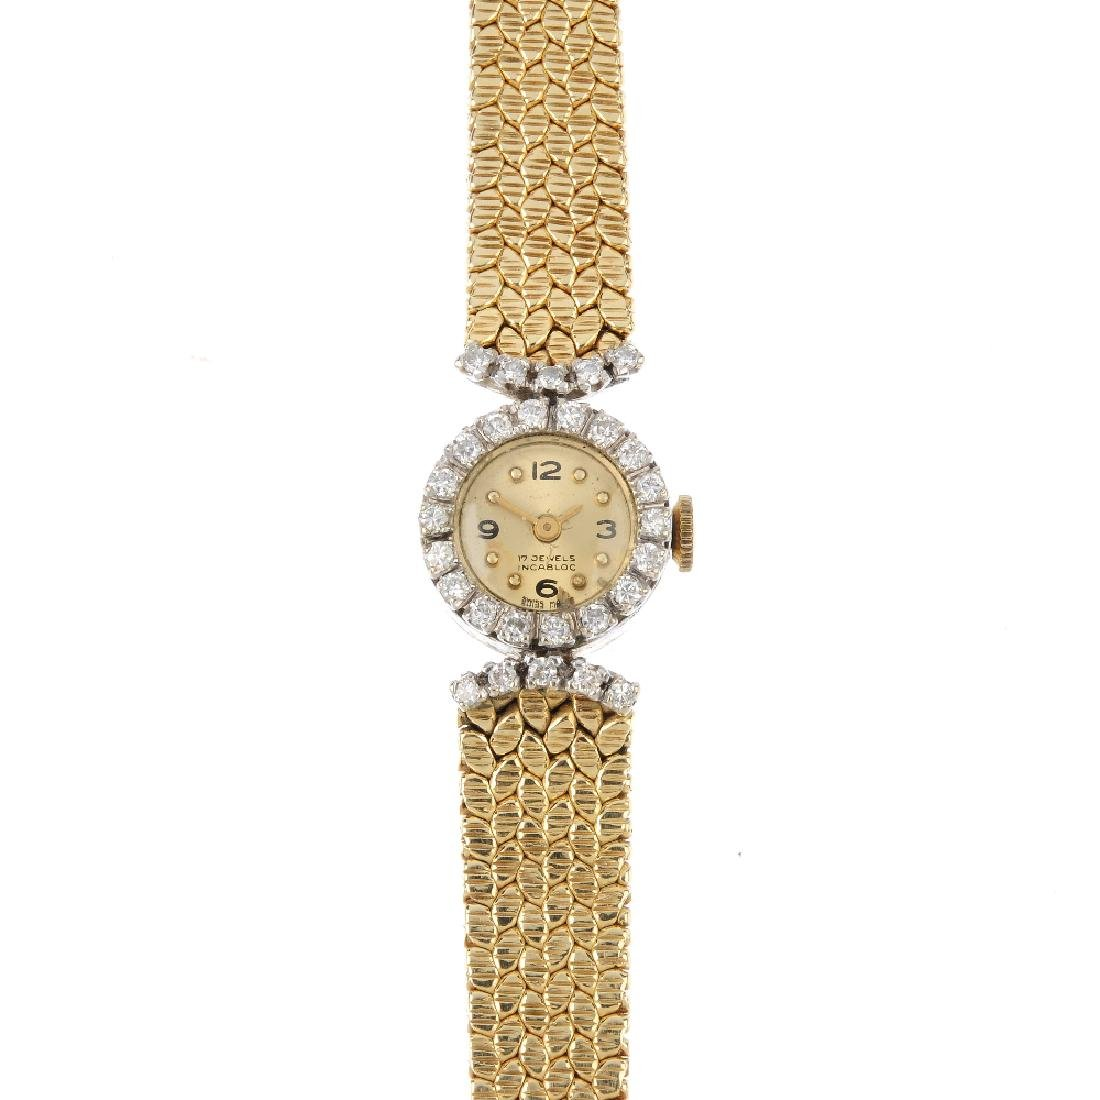 A lady's mid 20th century diamond cocktail watch. The